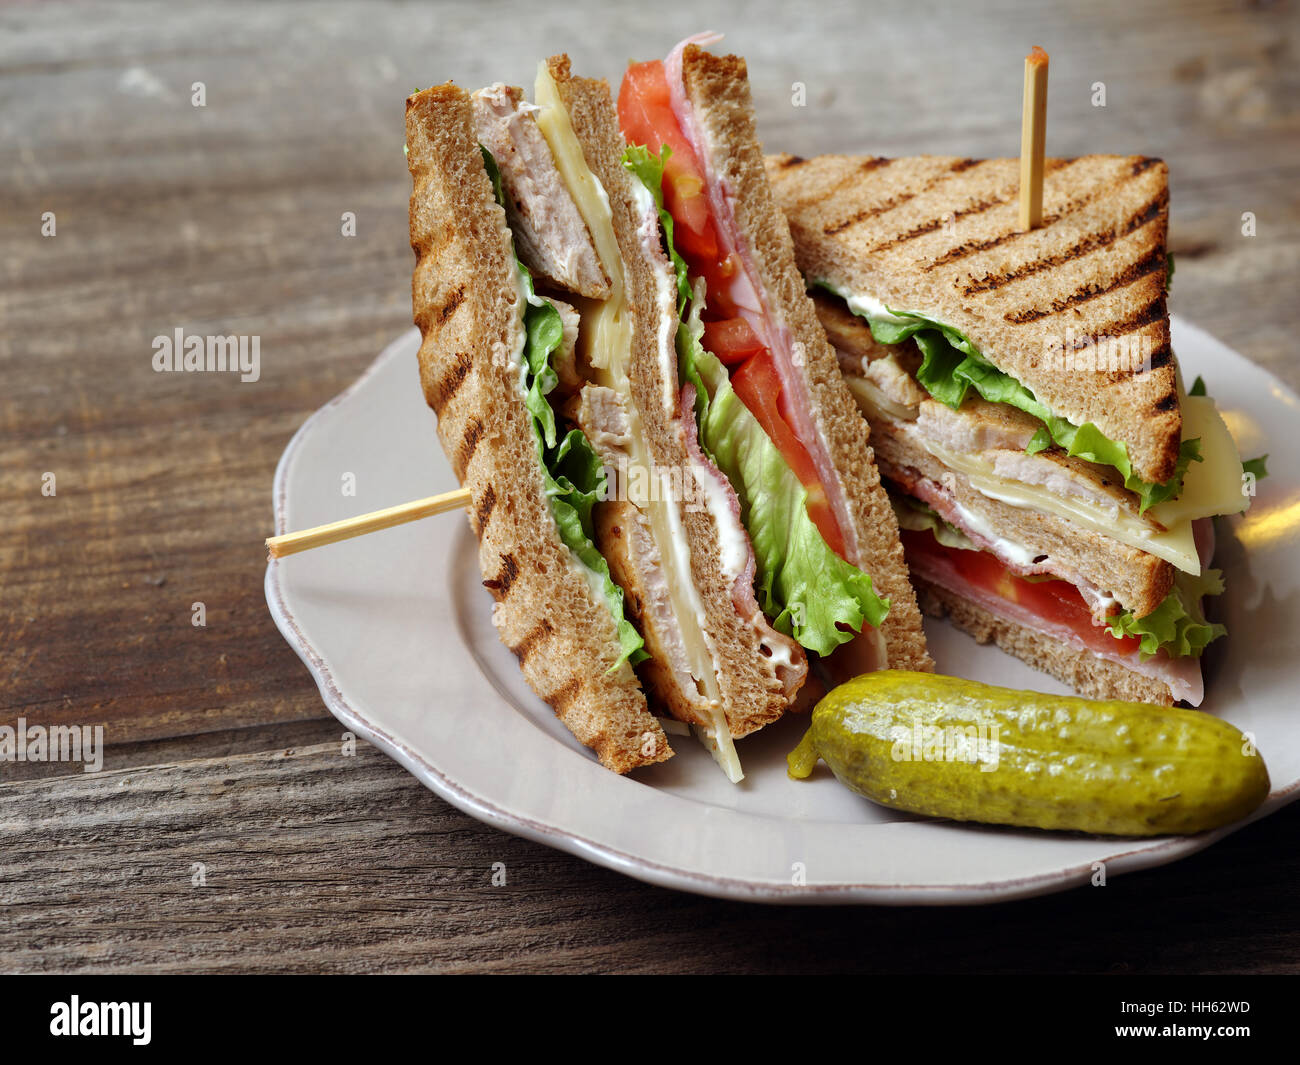 Photo of a club sandwich made with turkey, bacon, ham, tomato, cheese, lettuce, and garnished with a pickle. - Stock Image